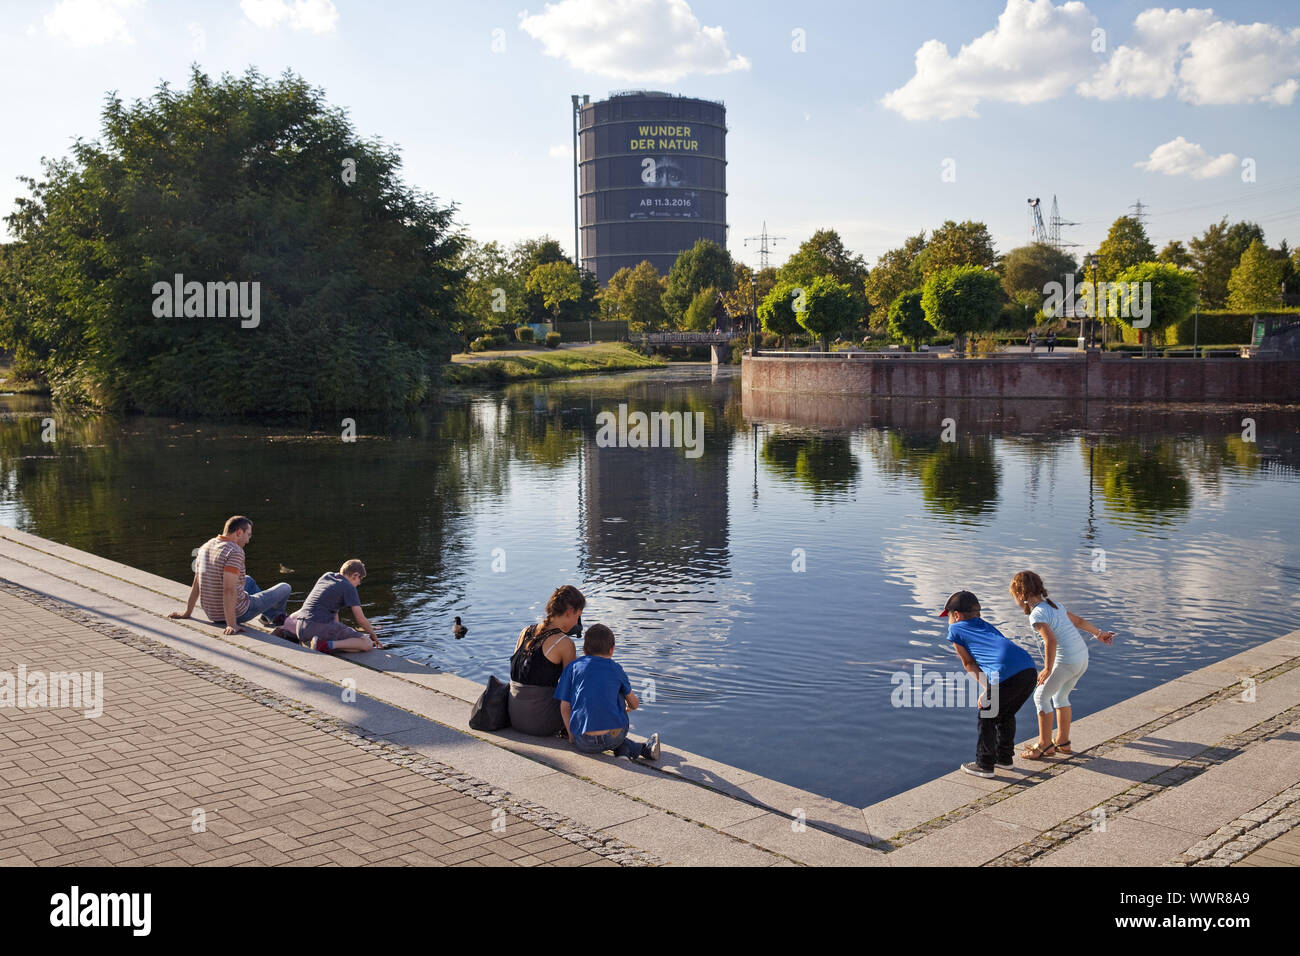 people at the Centro park with Gasometer, Oberhausen, North Rhine-Westphalia, Germany, Europe Stock Photo